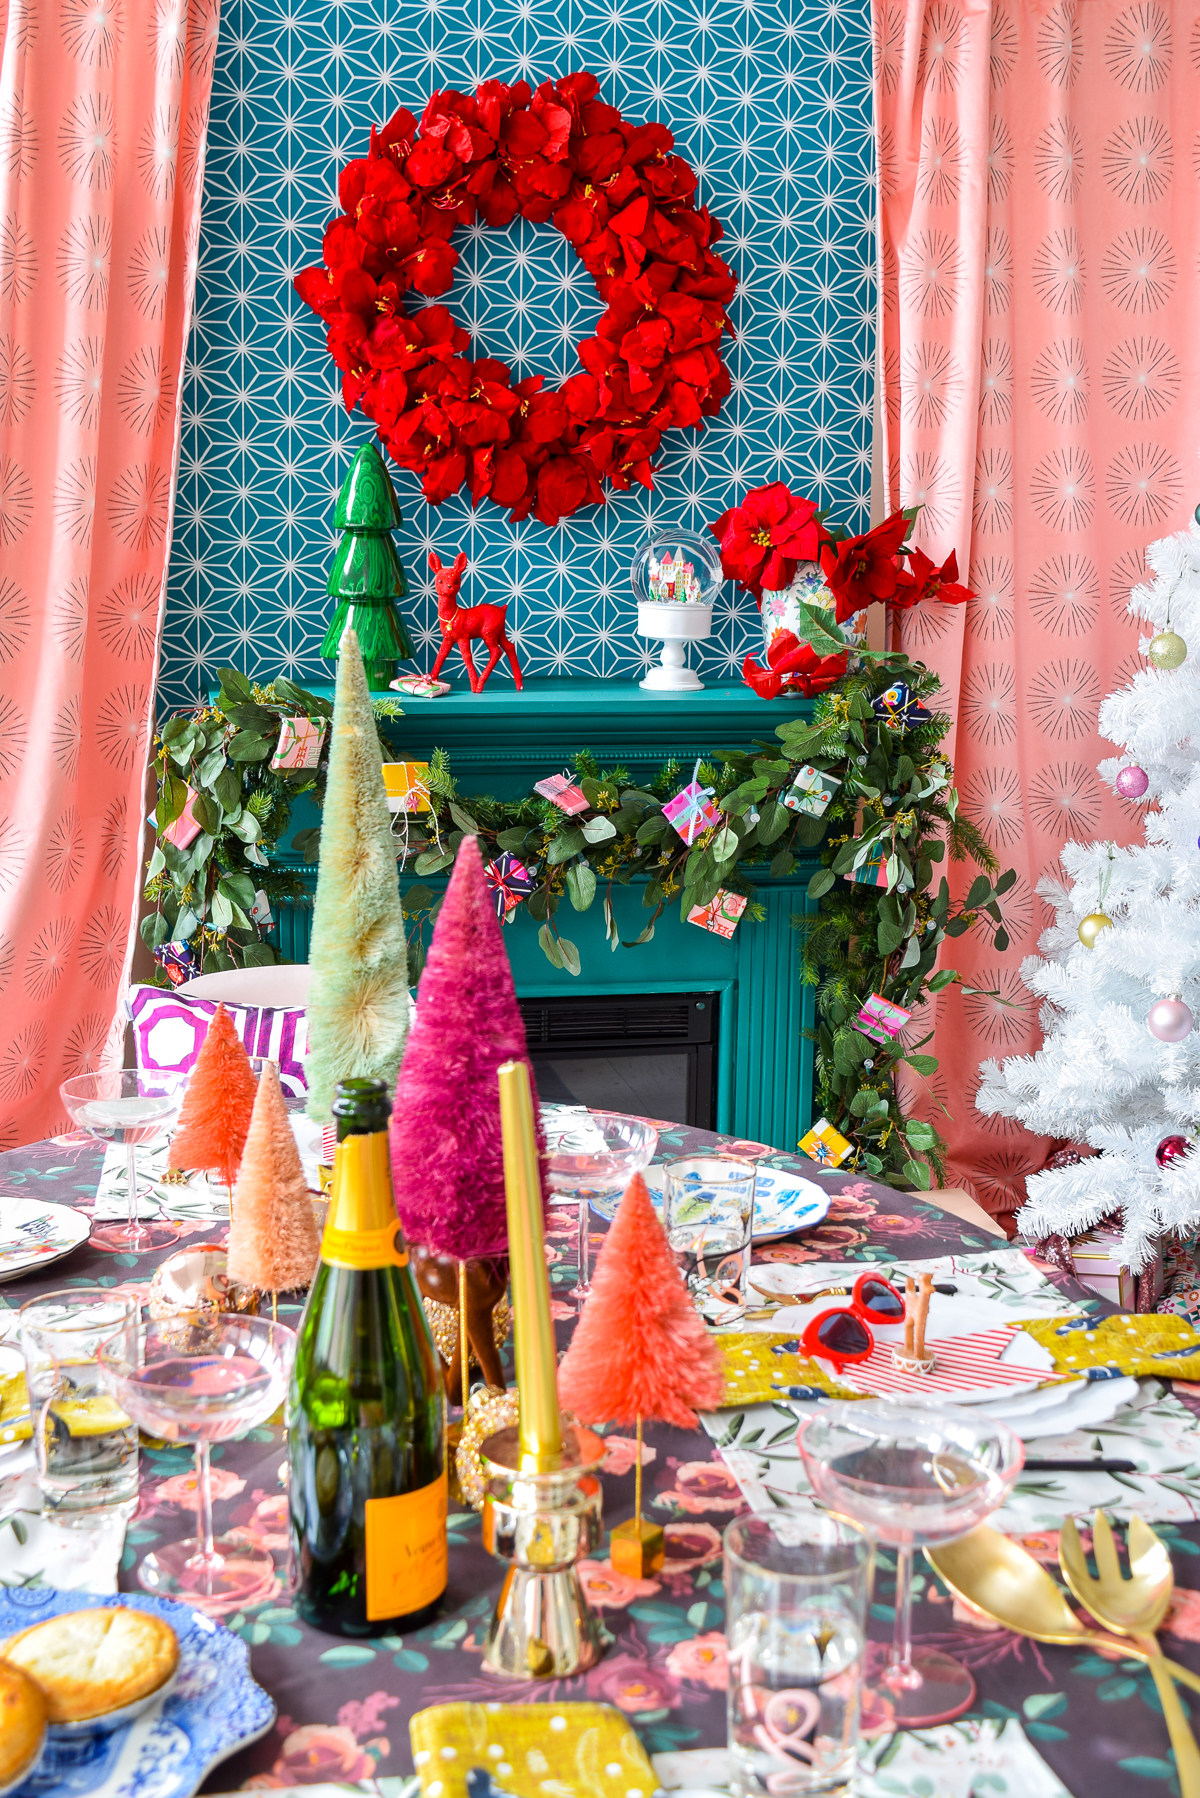 Christmas Dinner Party.A Luxurious Christmas Dinner Party Pmq For Two